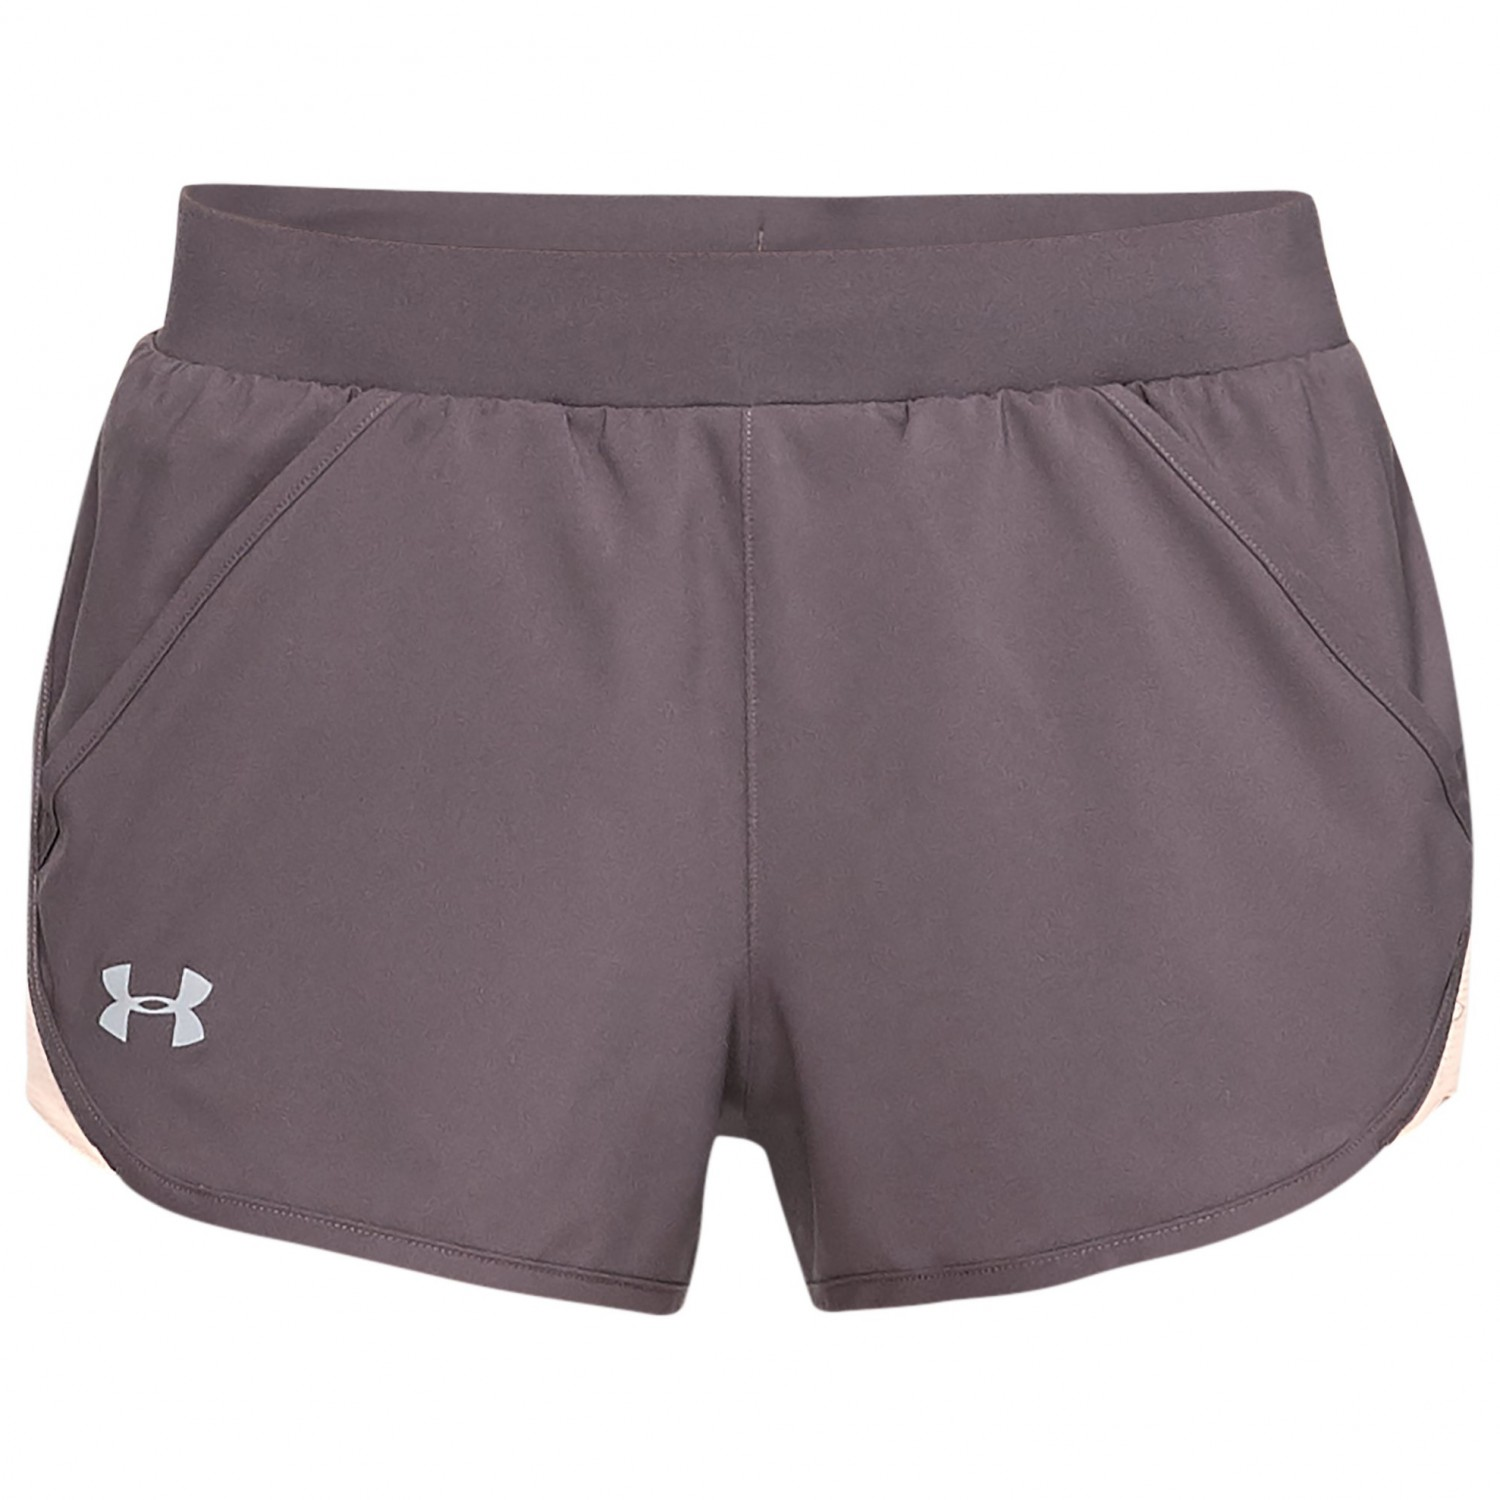 Under Armour Womens Fly by Mini Short